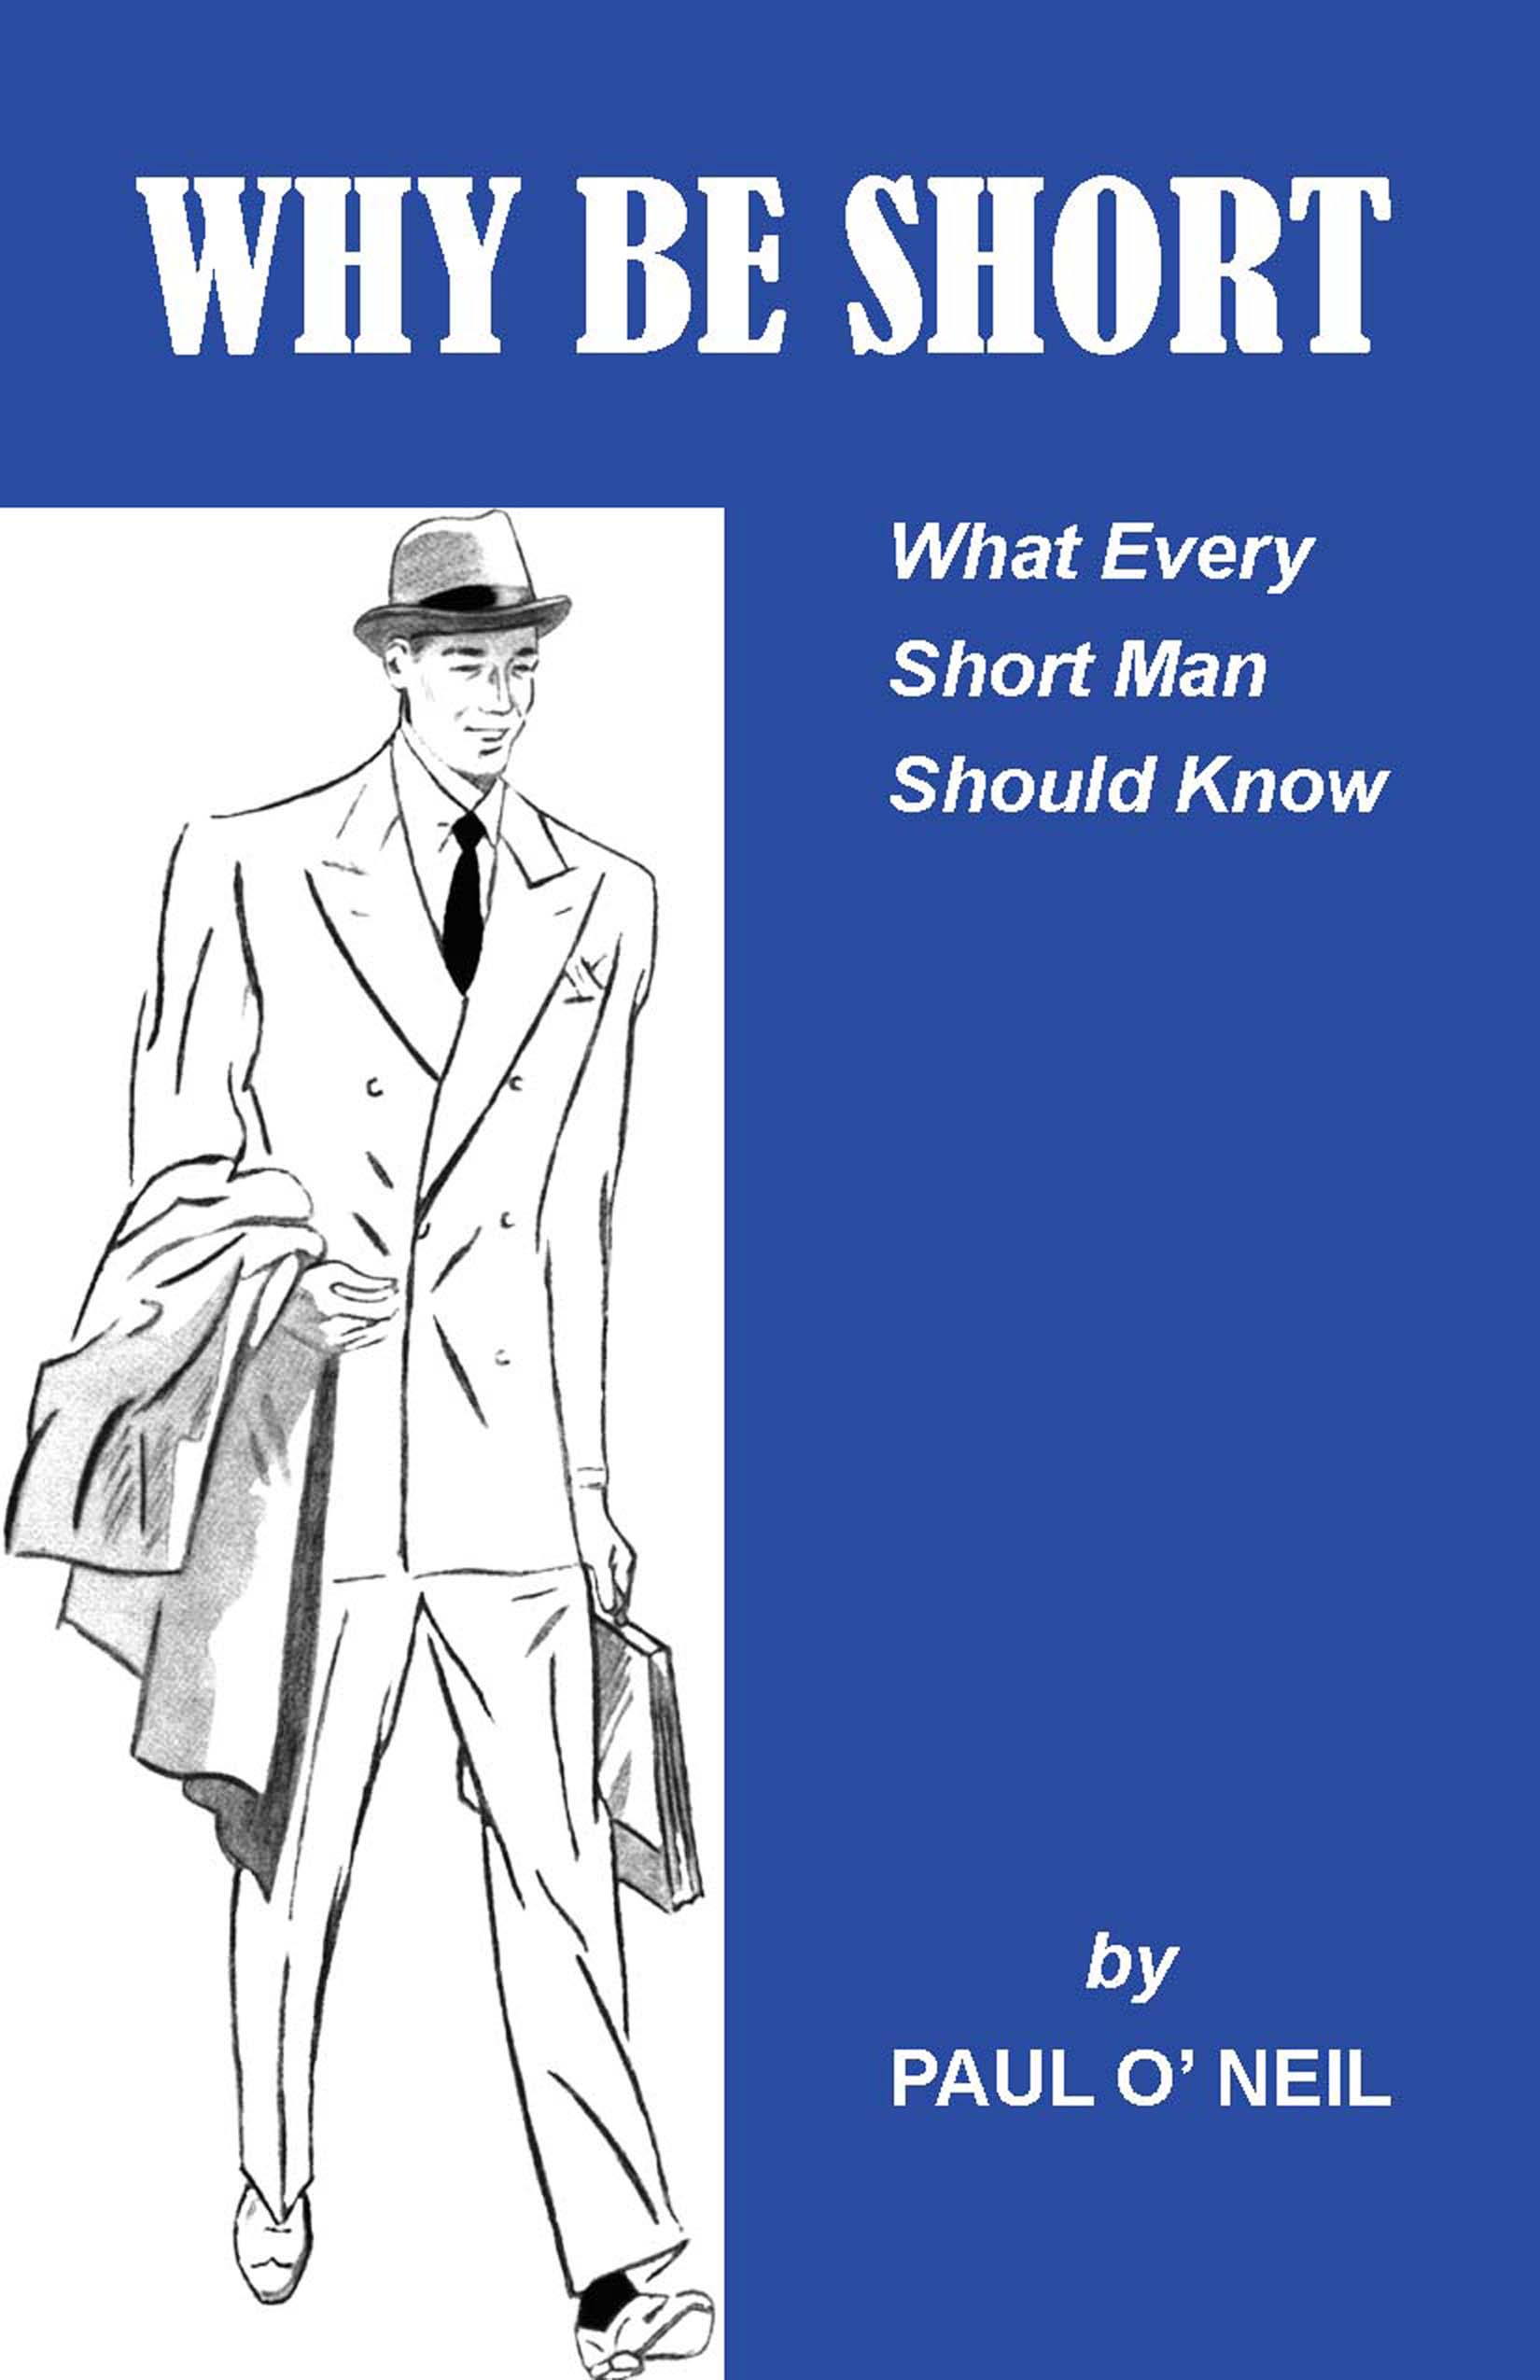 Why Be Short: What Every Short Man Should Know